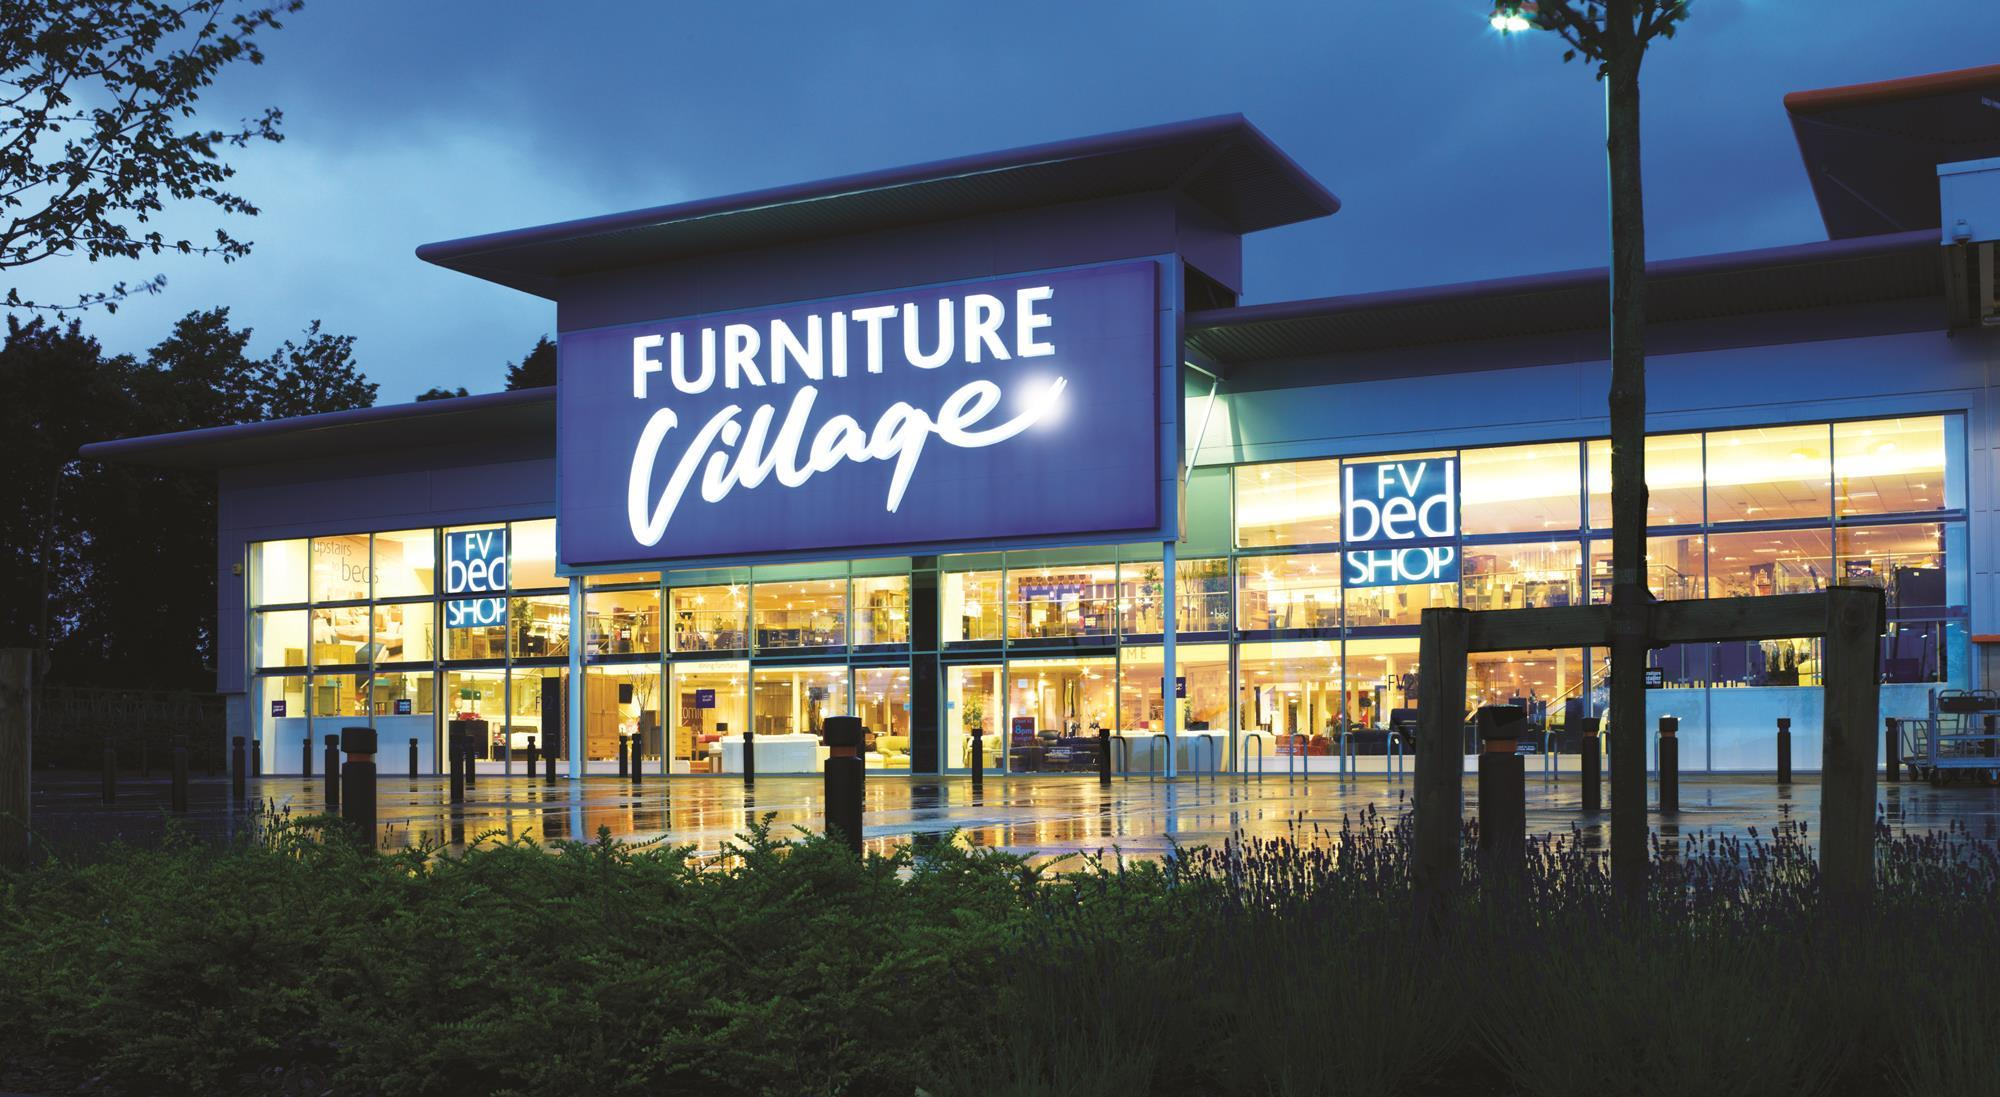 Furniture Village Investment furniture village plots expansion after securing £6m investment